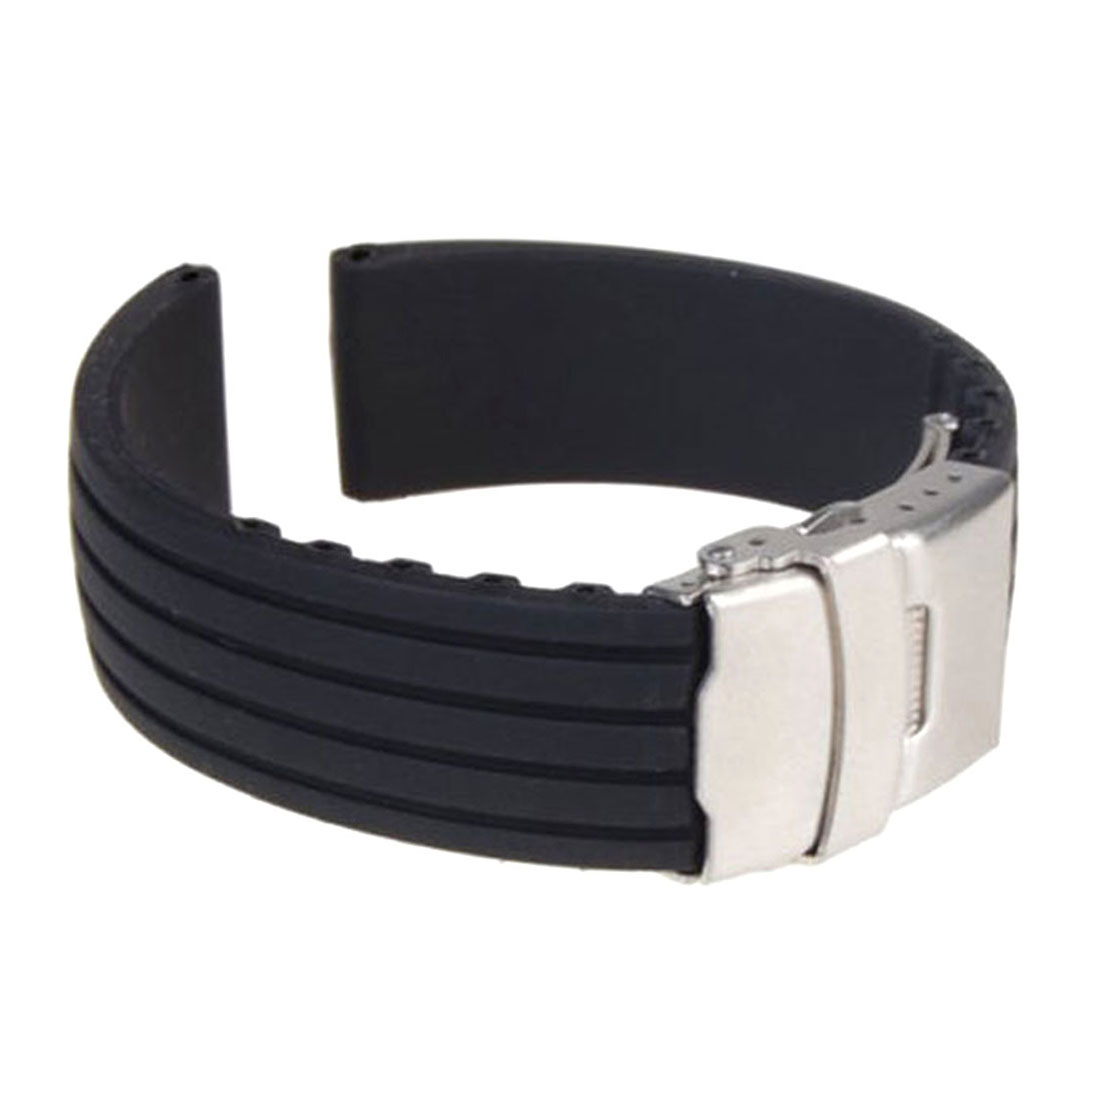 18mm 20mm 22mm 24mm Universal Watch Strap Silicone Rubber Link Bracelet Wrist Strap Light Tire Pattern Soft Silicone Strap